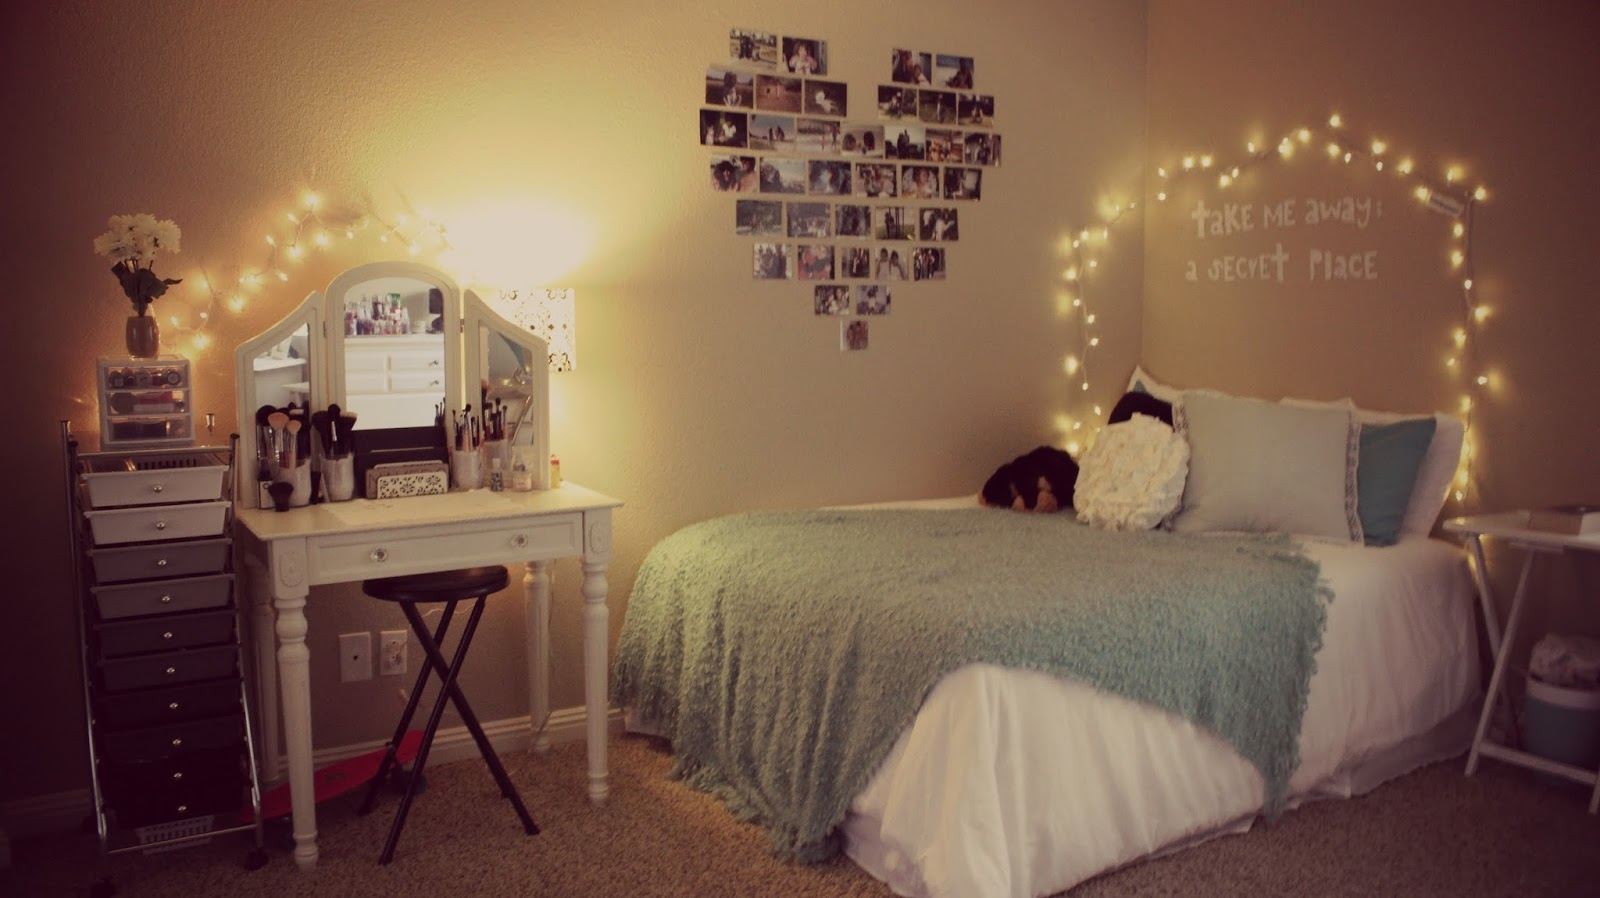 Diy tumblr room tfy tips for you for Cuarto tumblr con luces